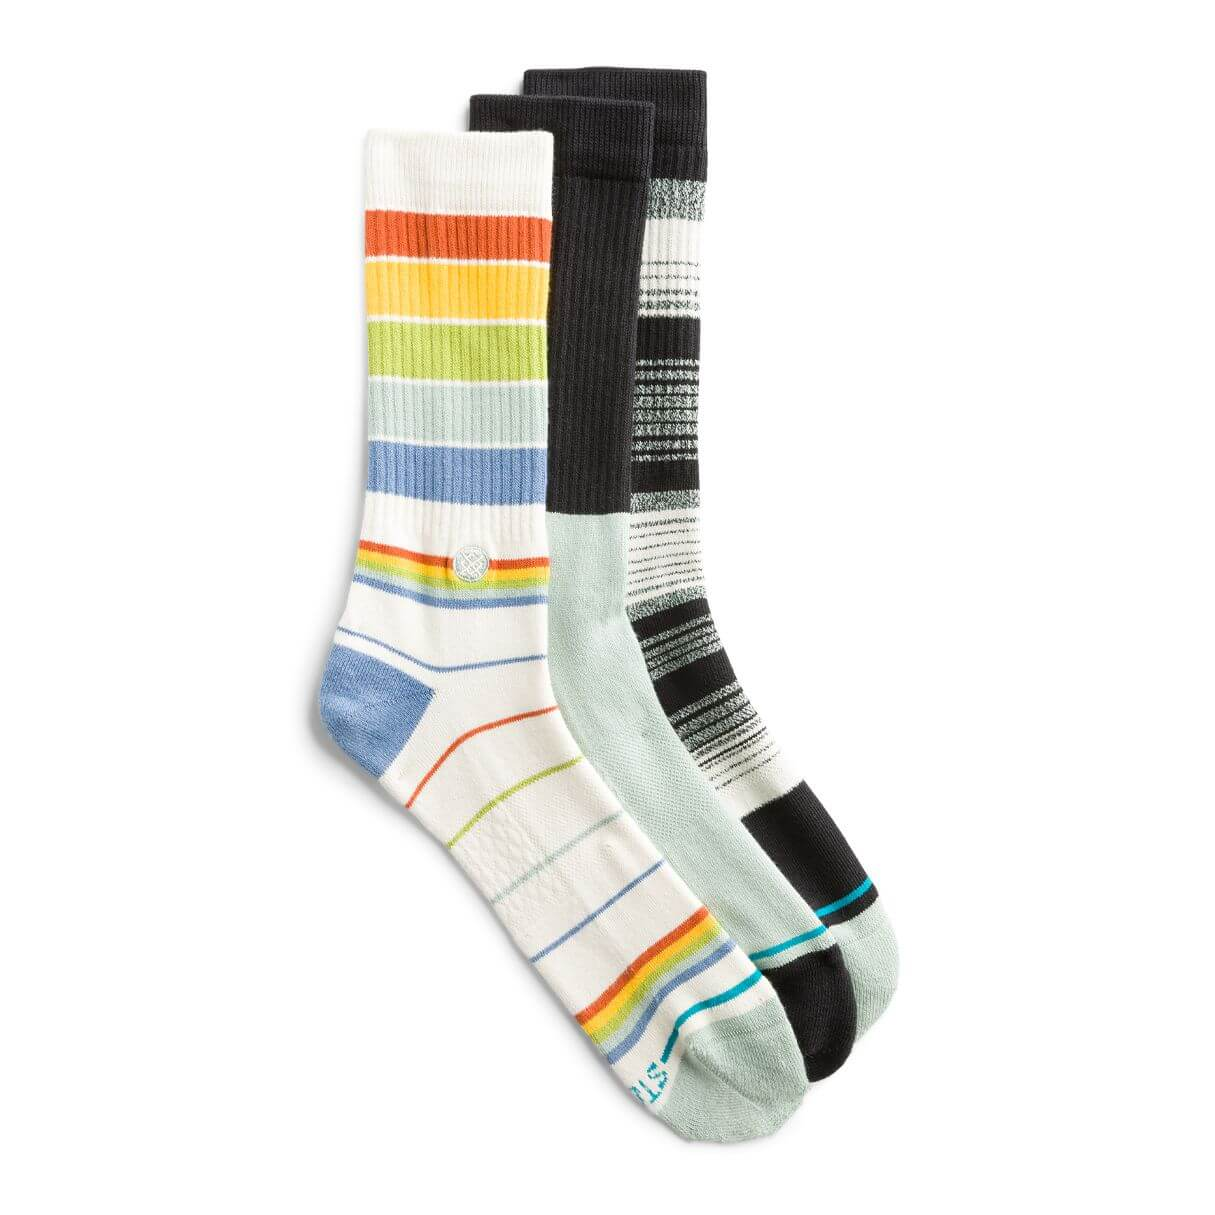 Stitch Fix Men's crew sock pack in rainbow stripes, black and mint, black and white stripes.